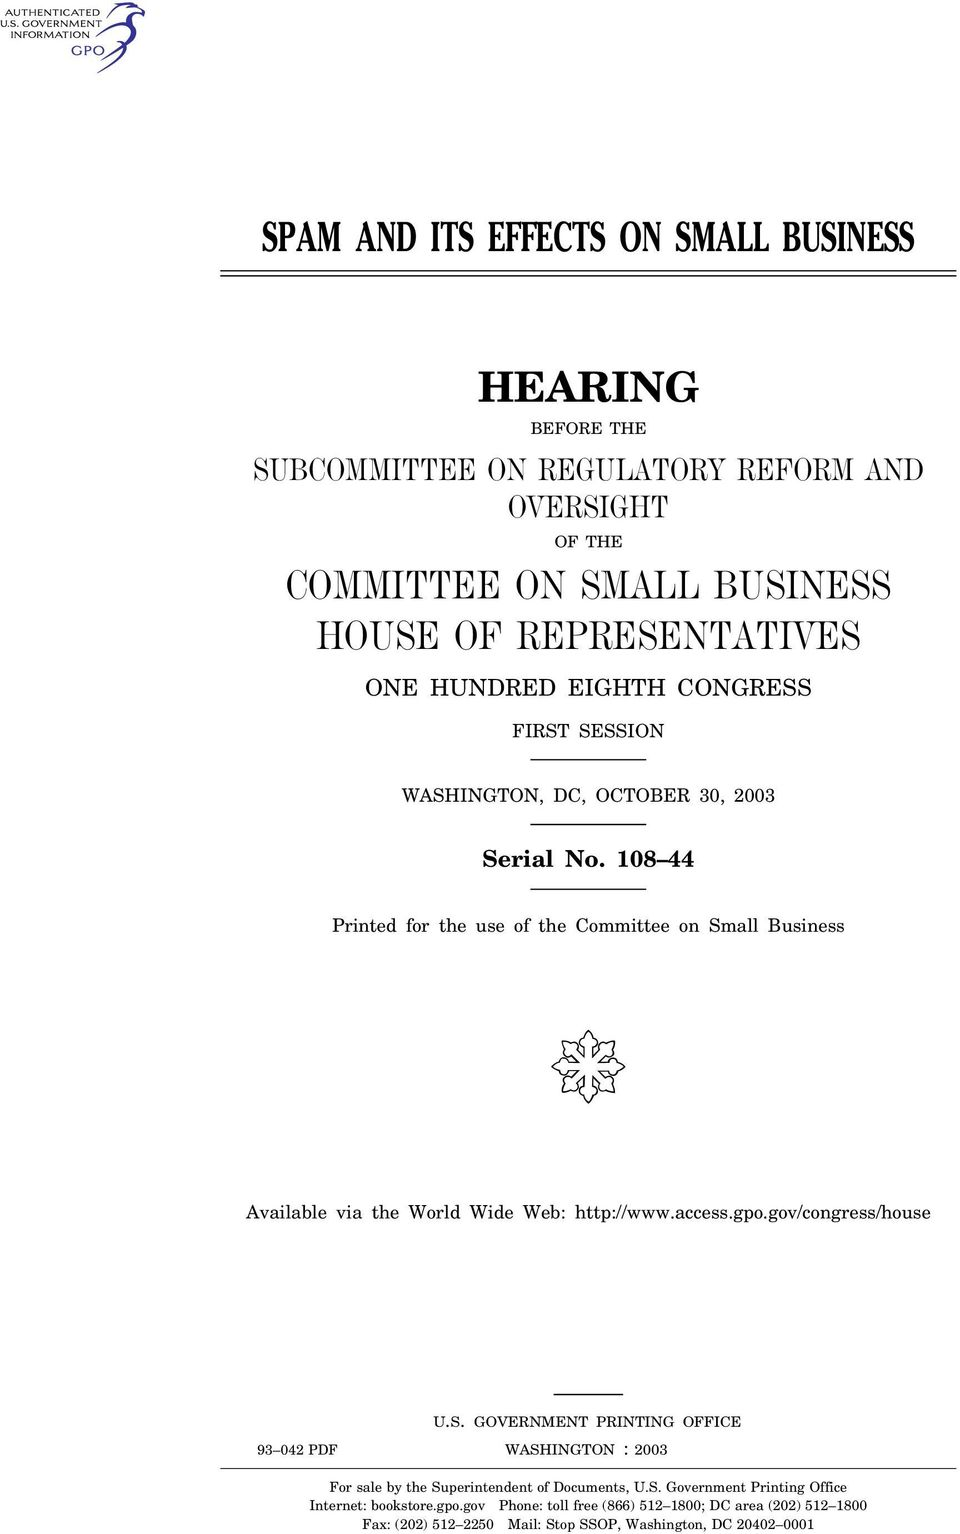 gov/congress/house U.S. GOVERNMENT PRINTING OFFICE WASHINGTON 93 042 PDF : 2003 For sale by the Superintendent of Documents, U.S. Government Printing Office Internet: bookstore.gpo.